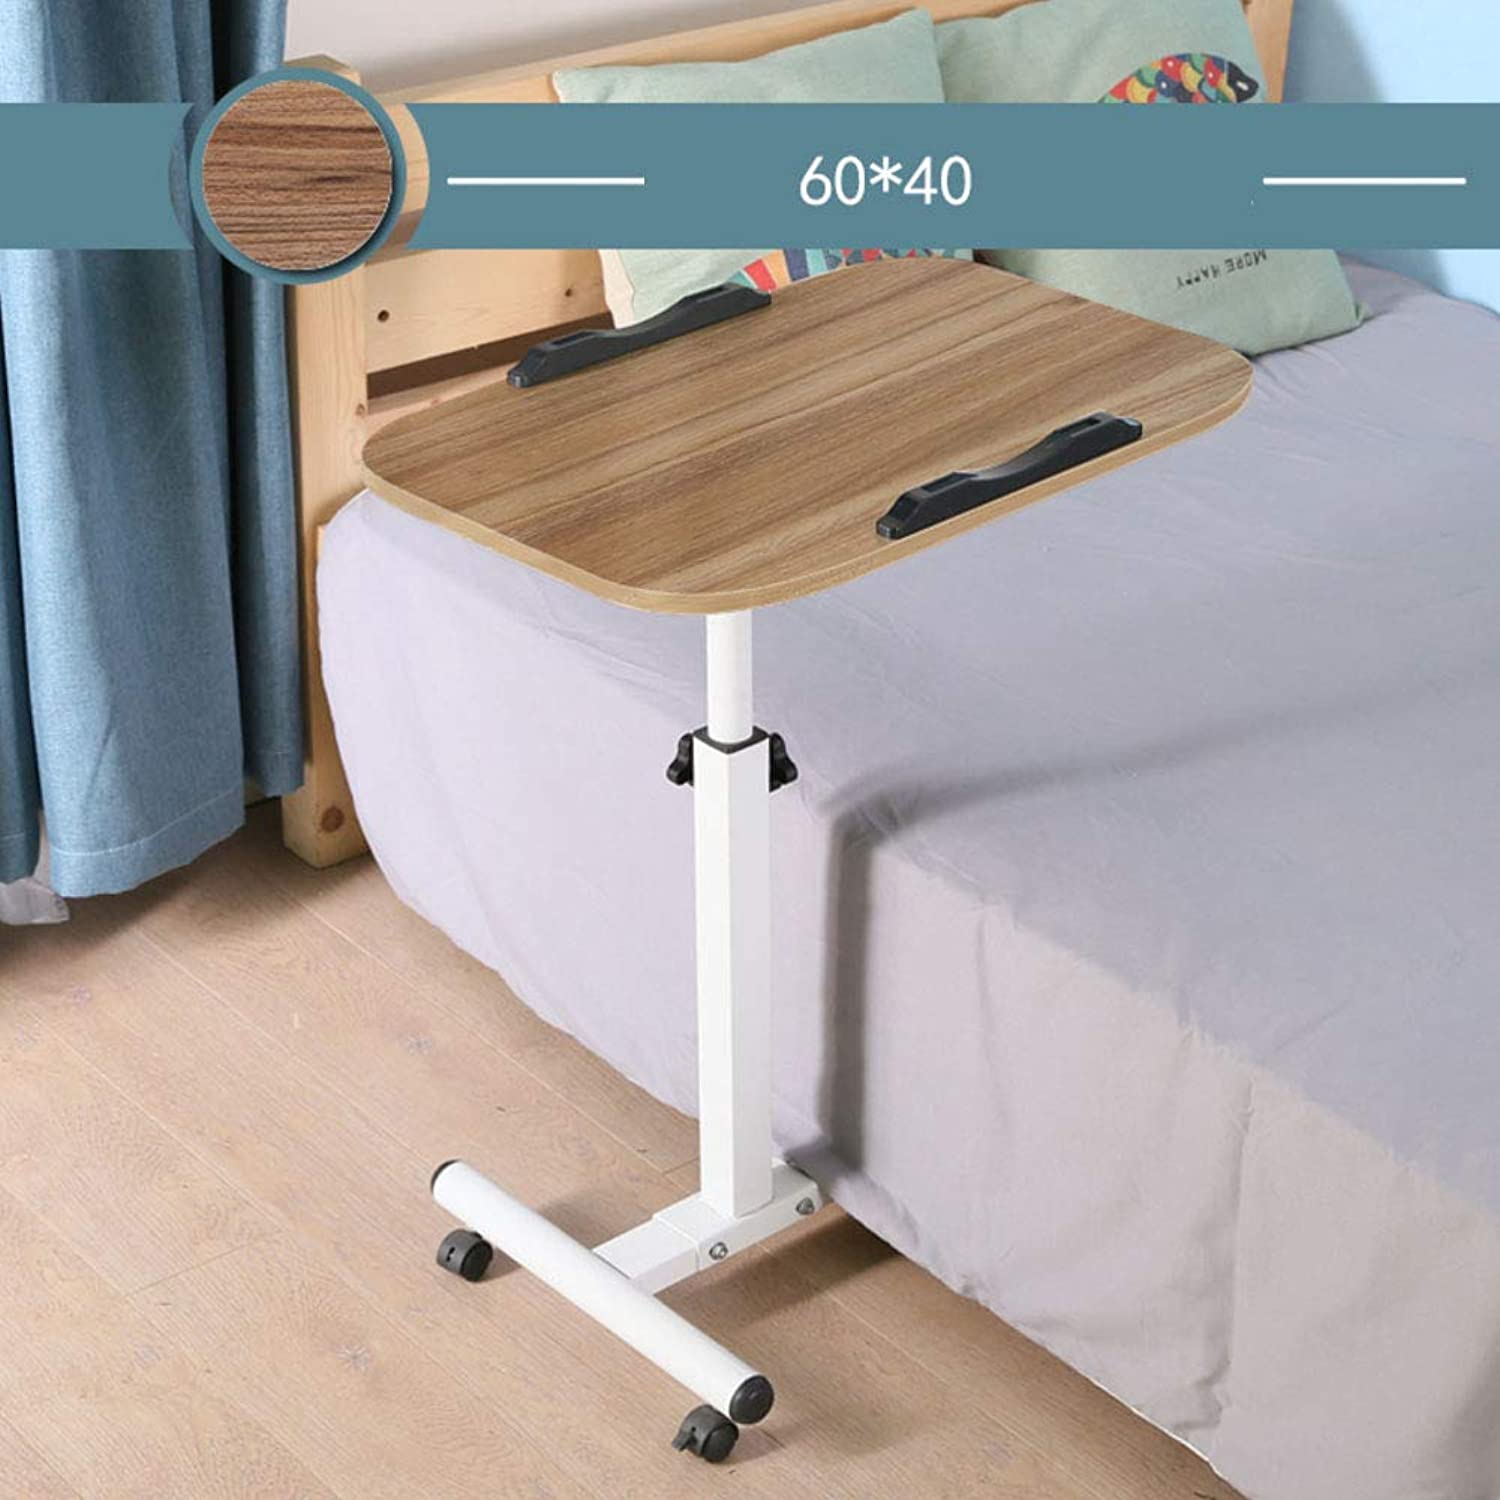 Laptop Cart Table,Height Adjustable Mobile Stand Desk,Rolling Tilting Overbed Table Stopper Ledge Bedside Writing Computer Table-d 60x40cm(24x16inch)